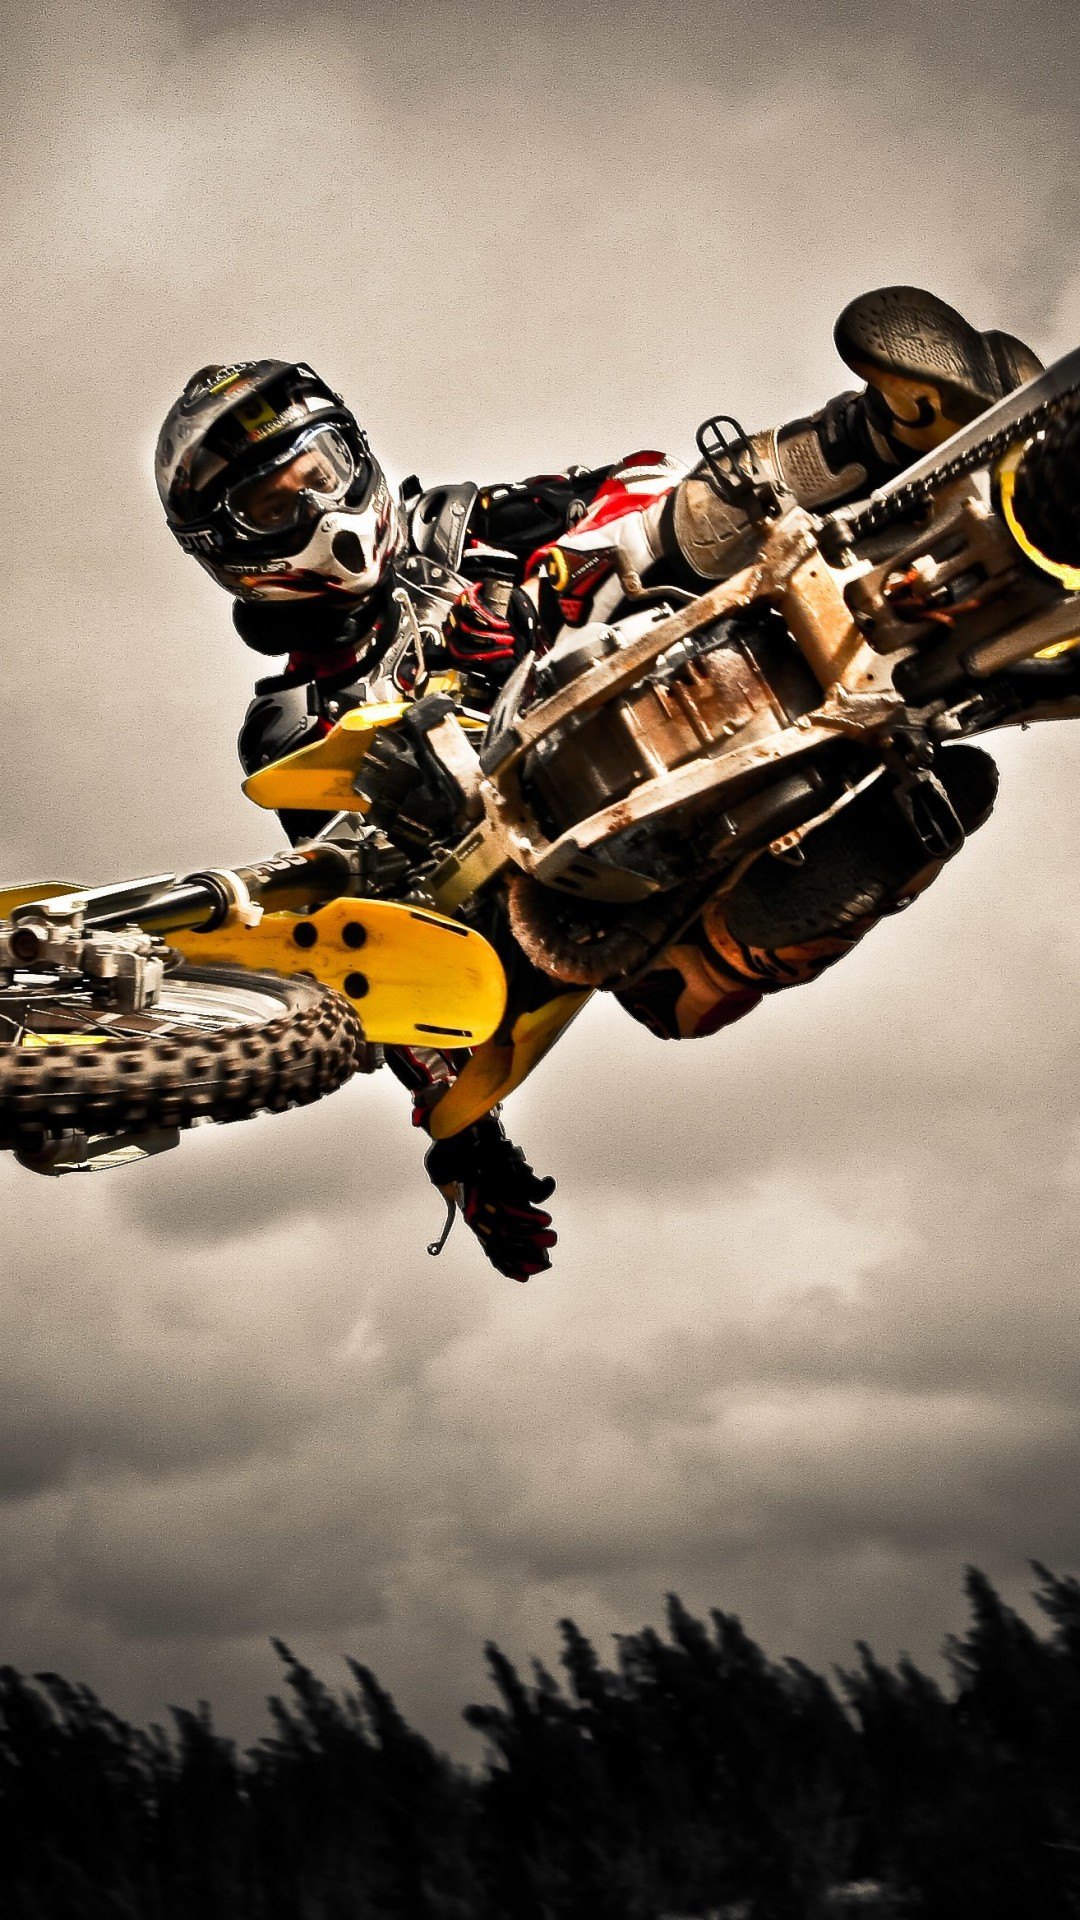 Motocross Jump Wallpaper for SONY Xperia Z2